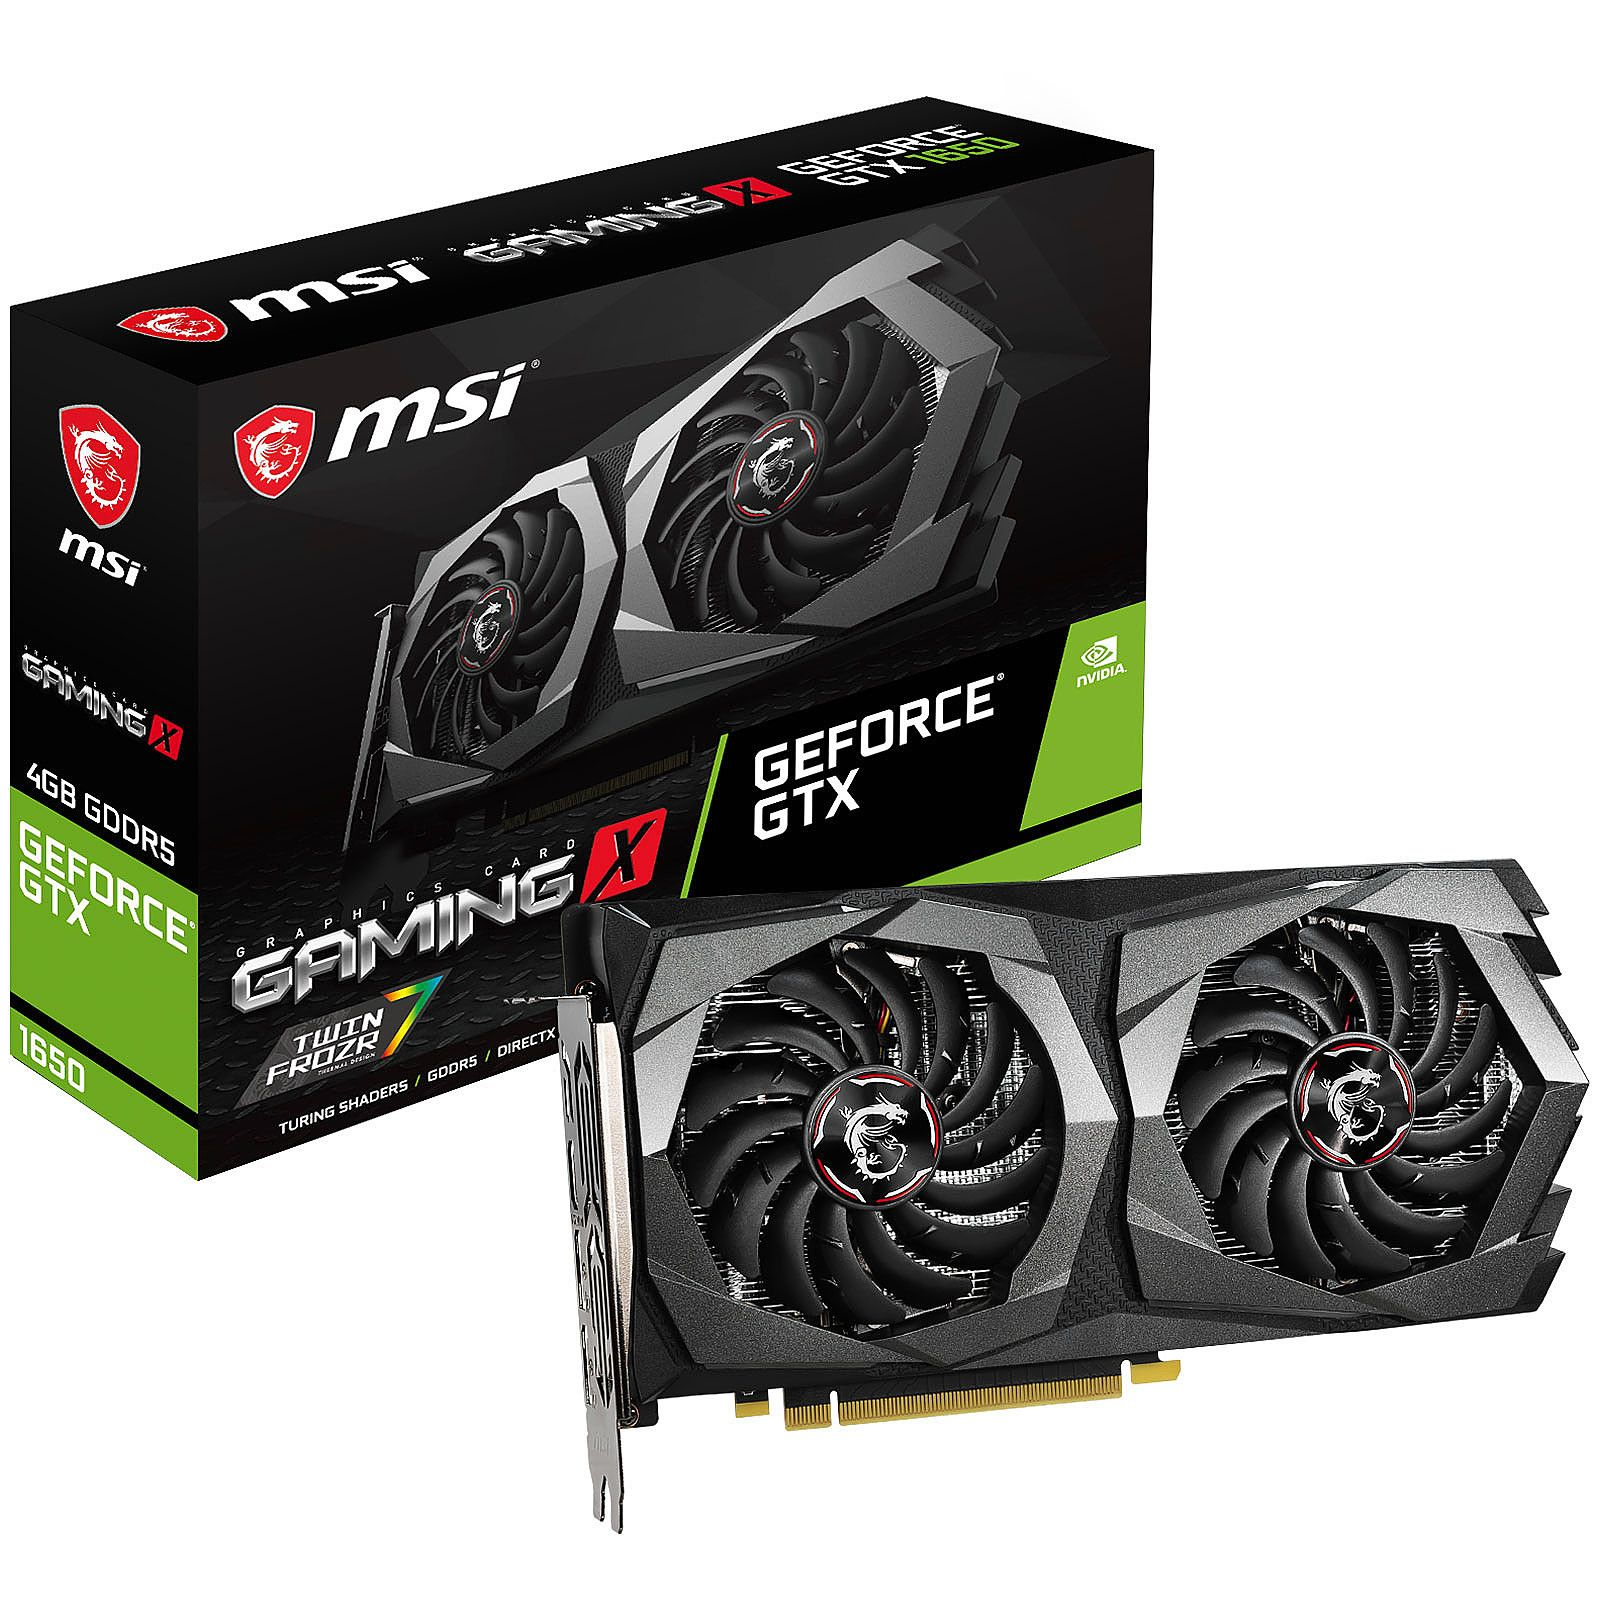 Tarjeta de video MSI GeForce GTX 1650 Gaming, 4GB GDDR5 128-bit, PCI-e 3.0.